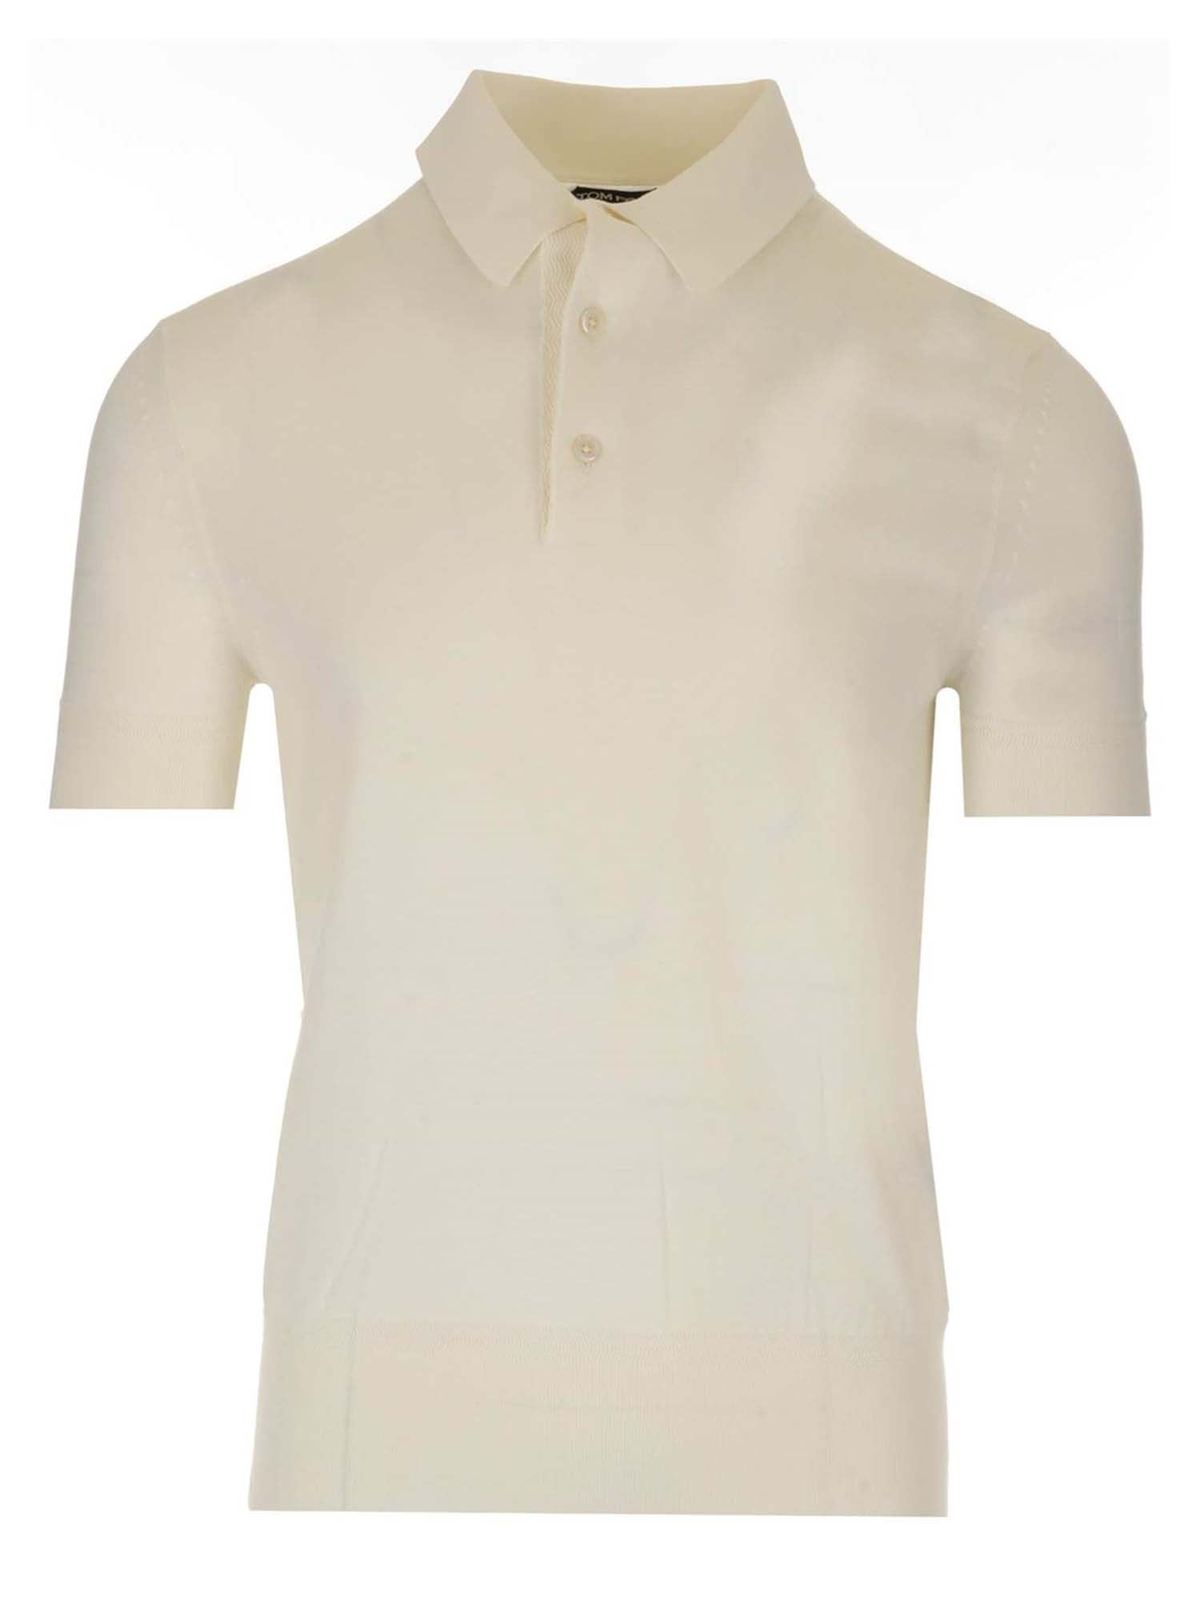 Tom Ford JERSEY POLO SHIRT IN WHITE